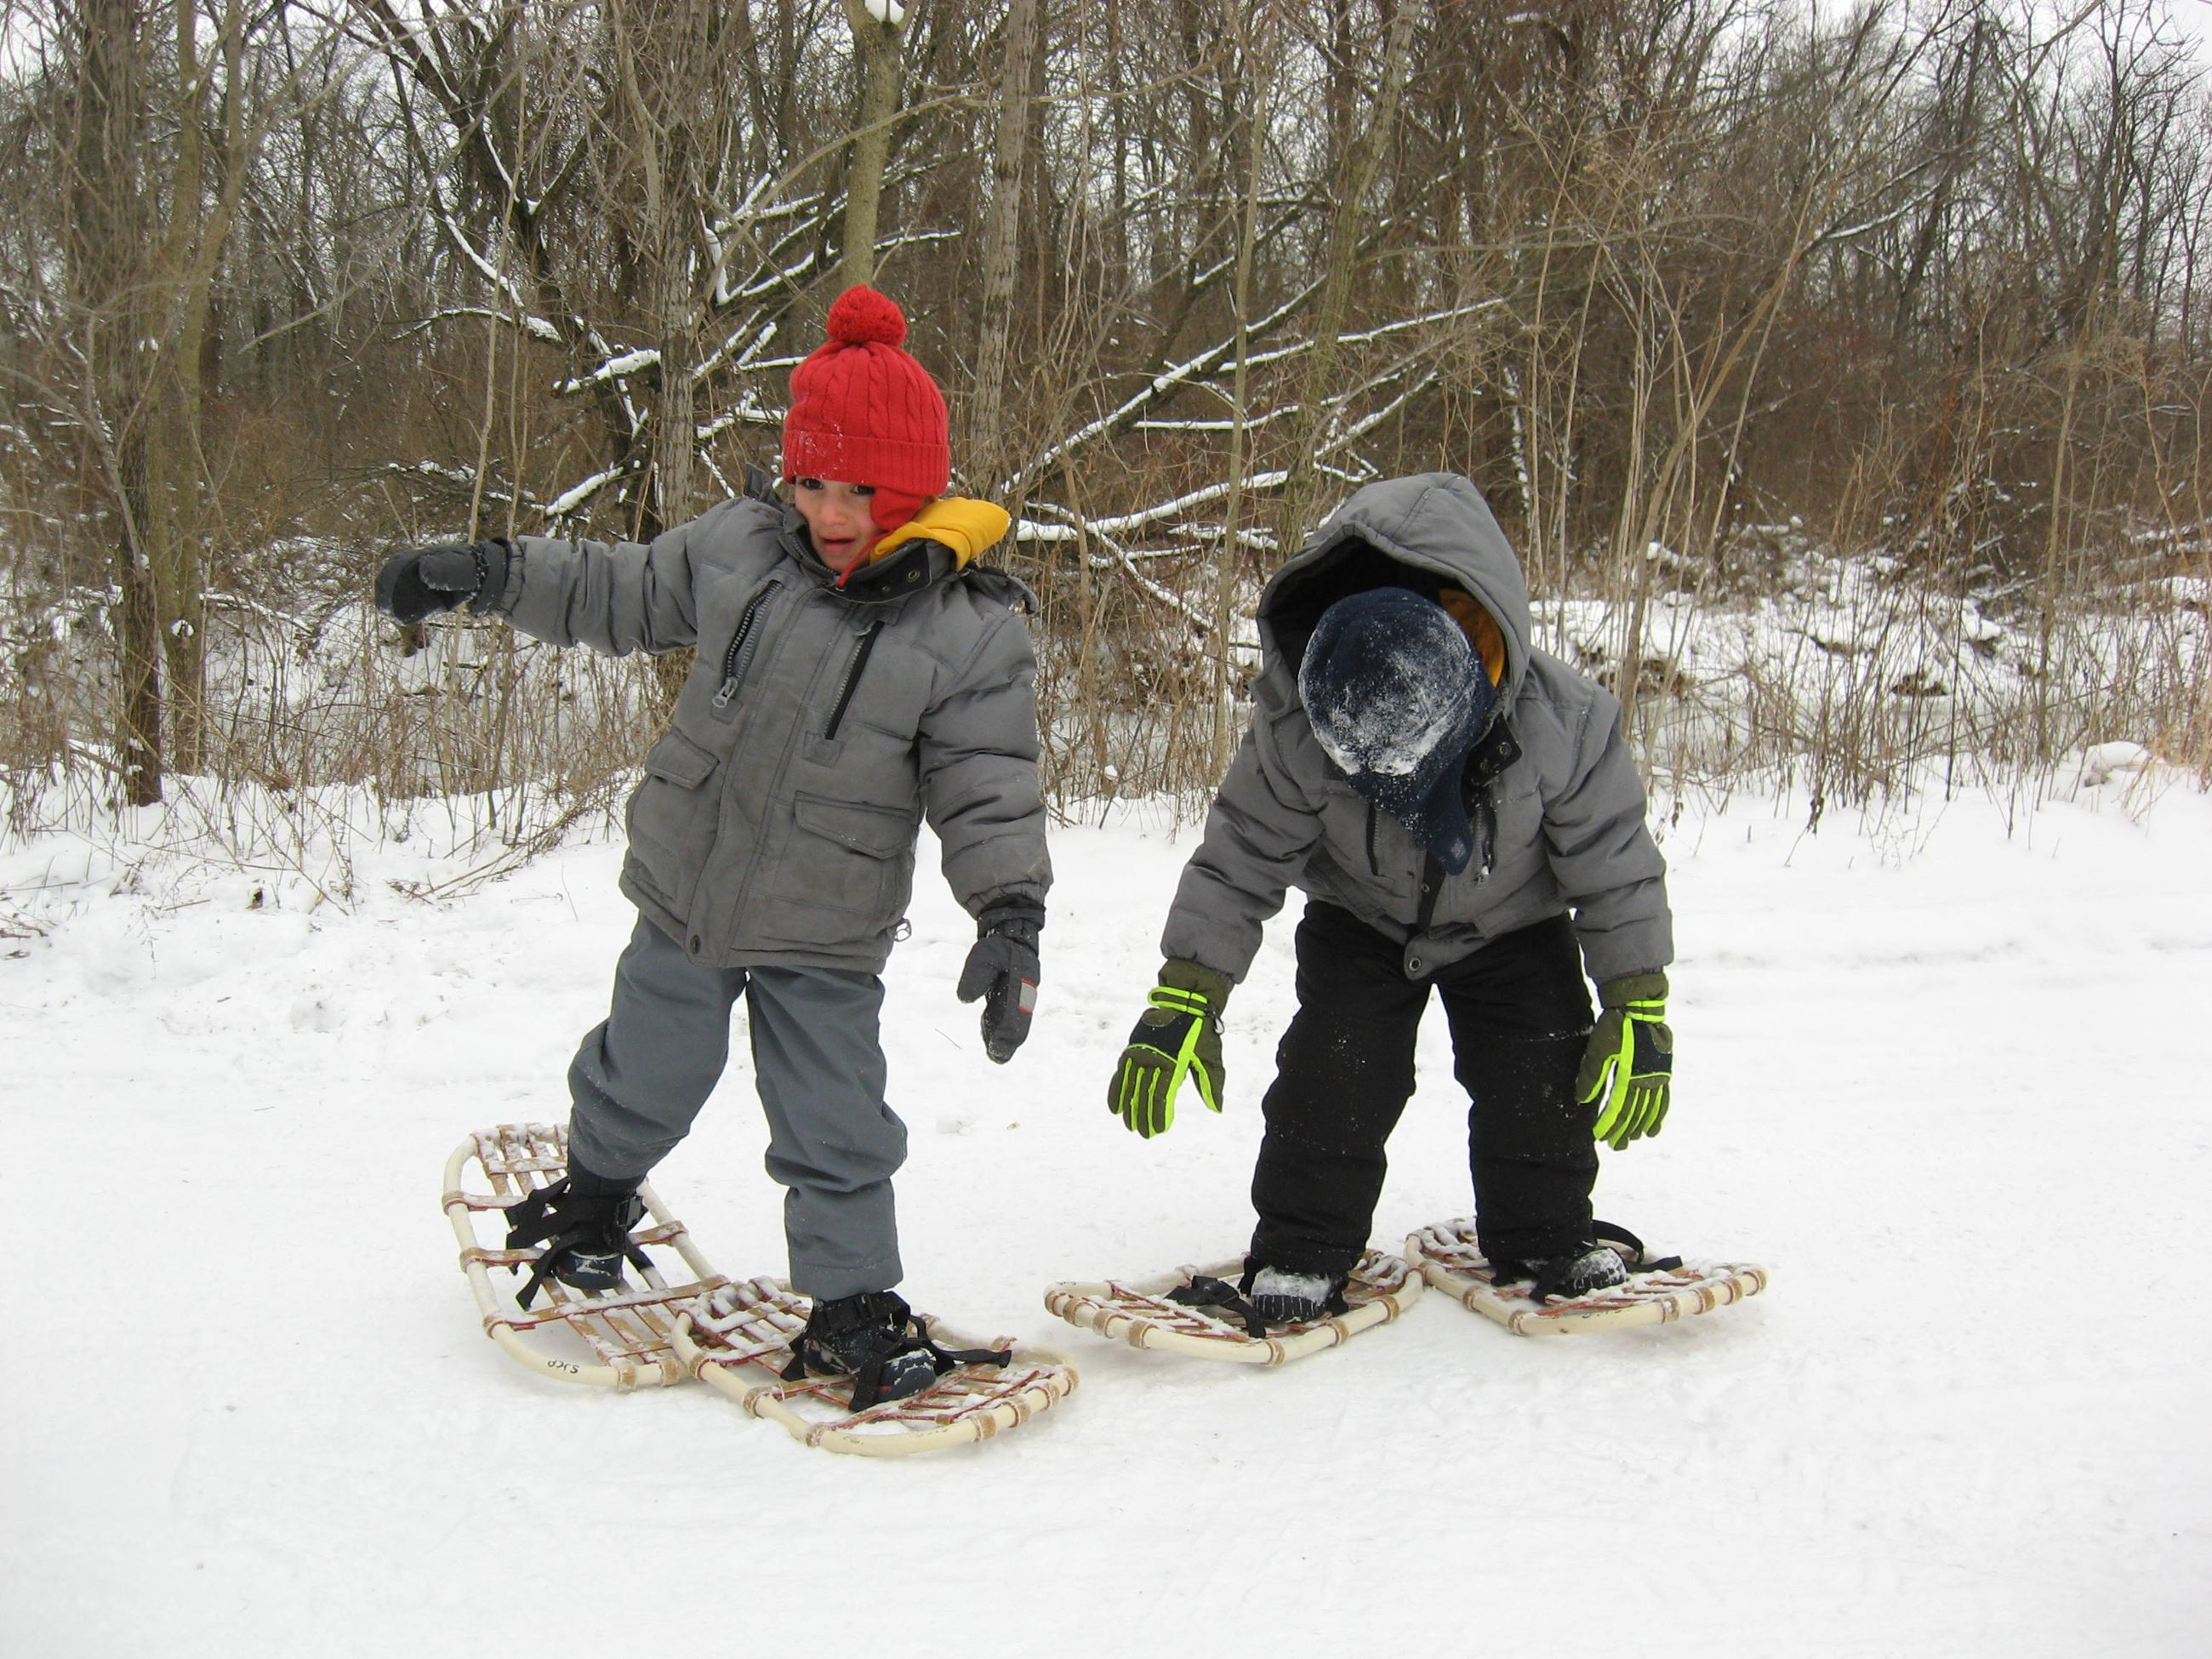 Children walk in snowshoes